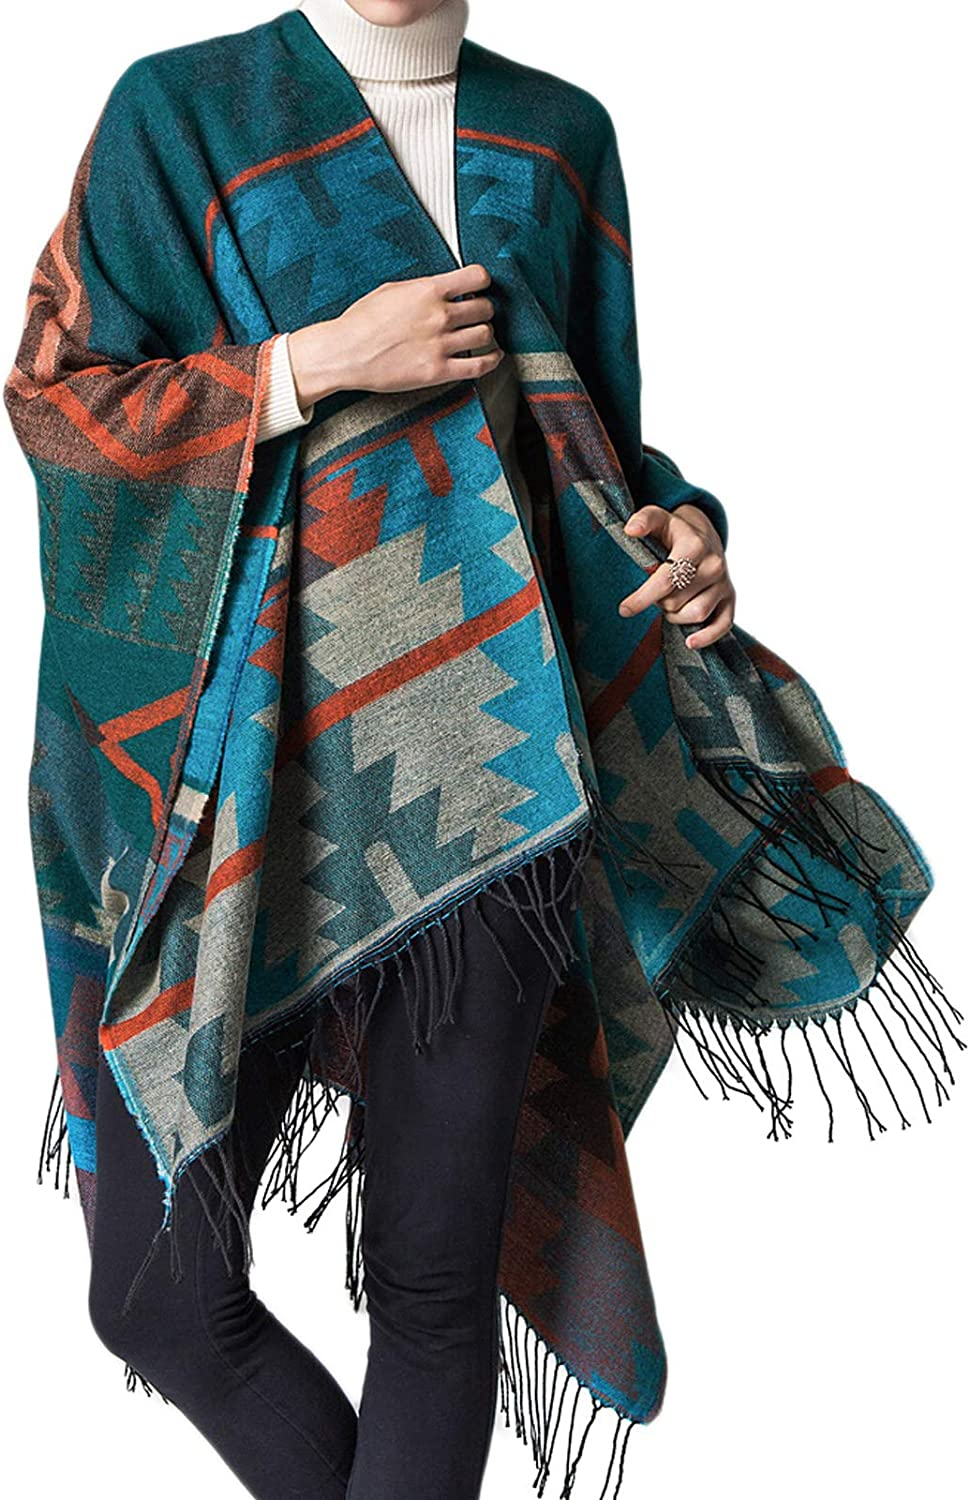 GRACE KARIN Winter Poncho Cape Open Front Blanket Shawl and Wrap Cloak Cardigan Sweater Coat